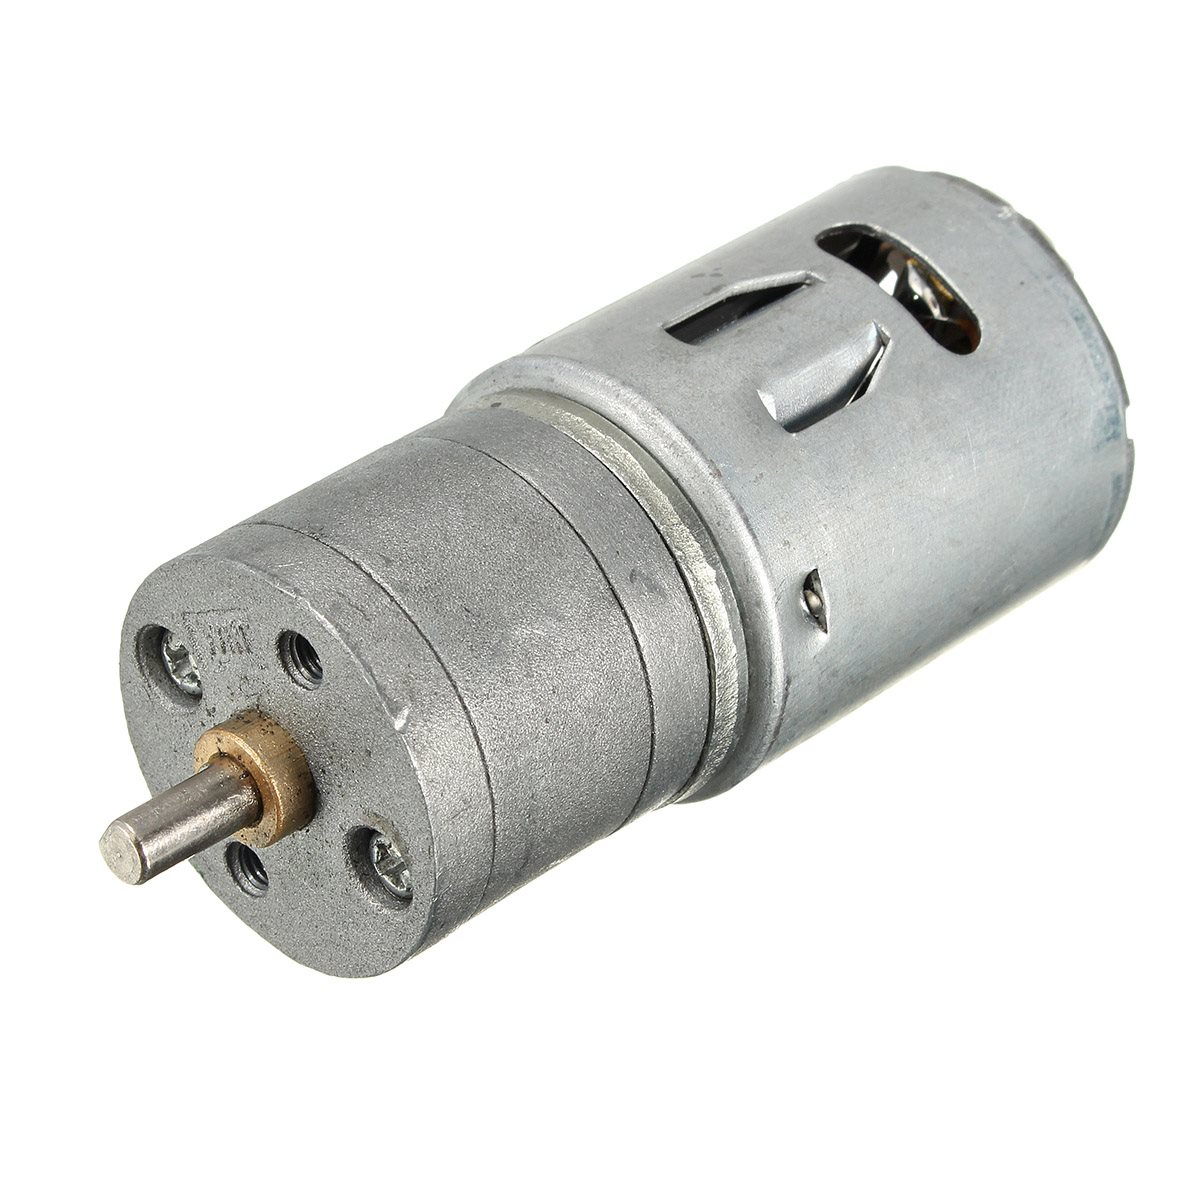 12V 6V DC 100RPM Powerful Torque Micro Speed Reduction Electric Gear Box Motor For Rc Models(China (Mainland))